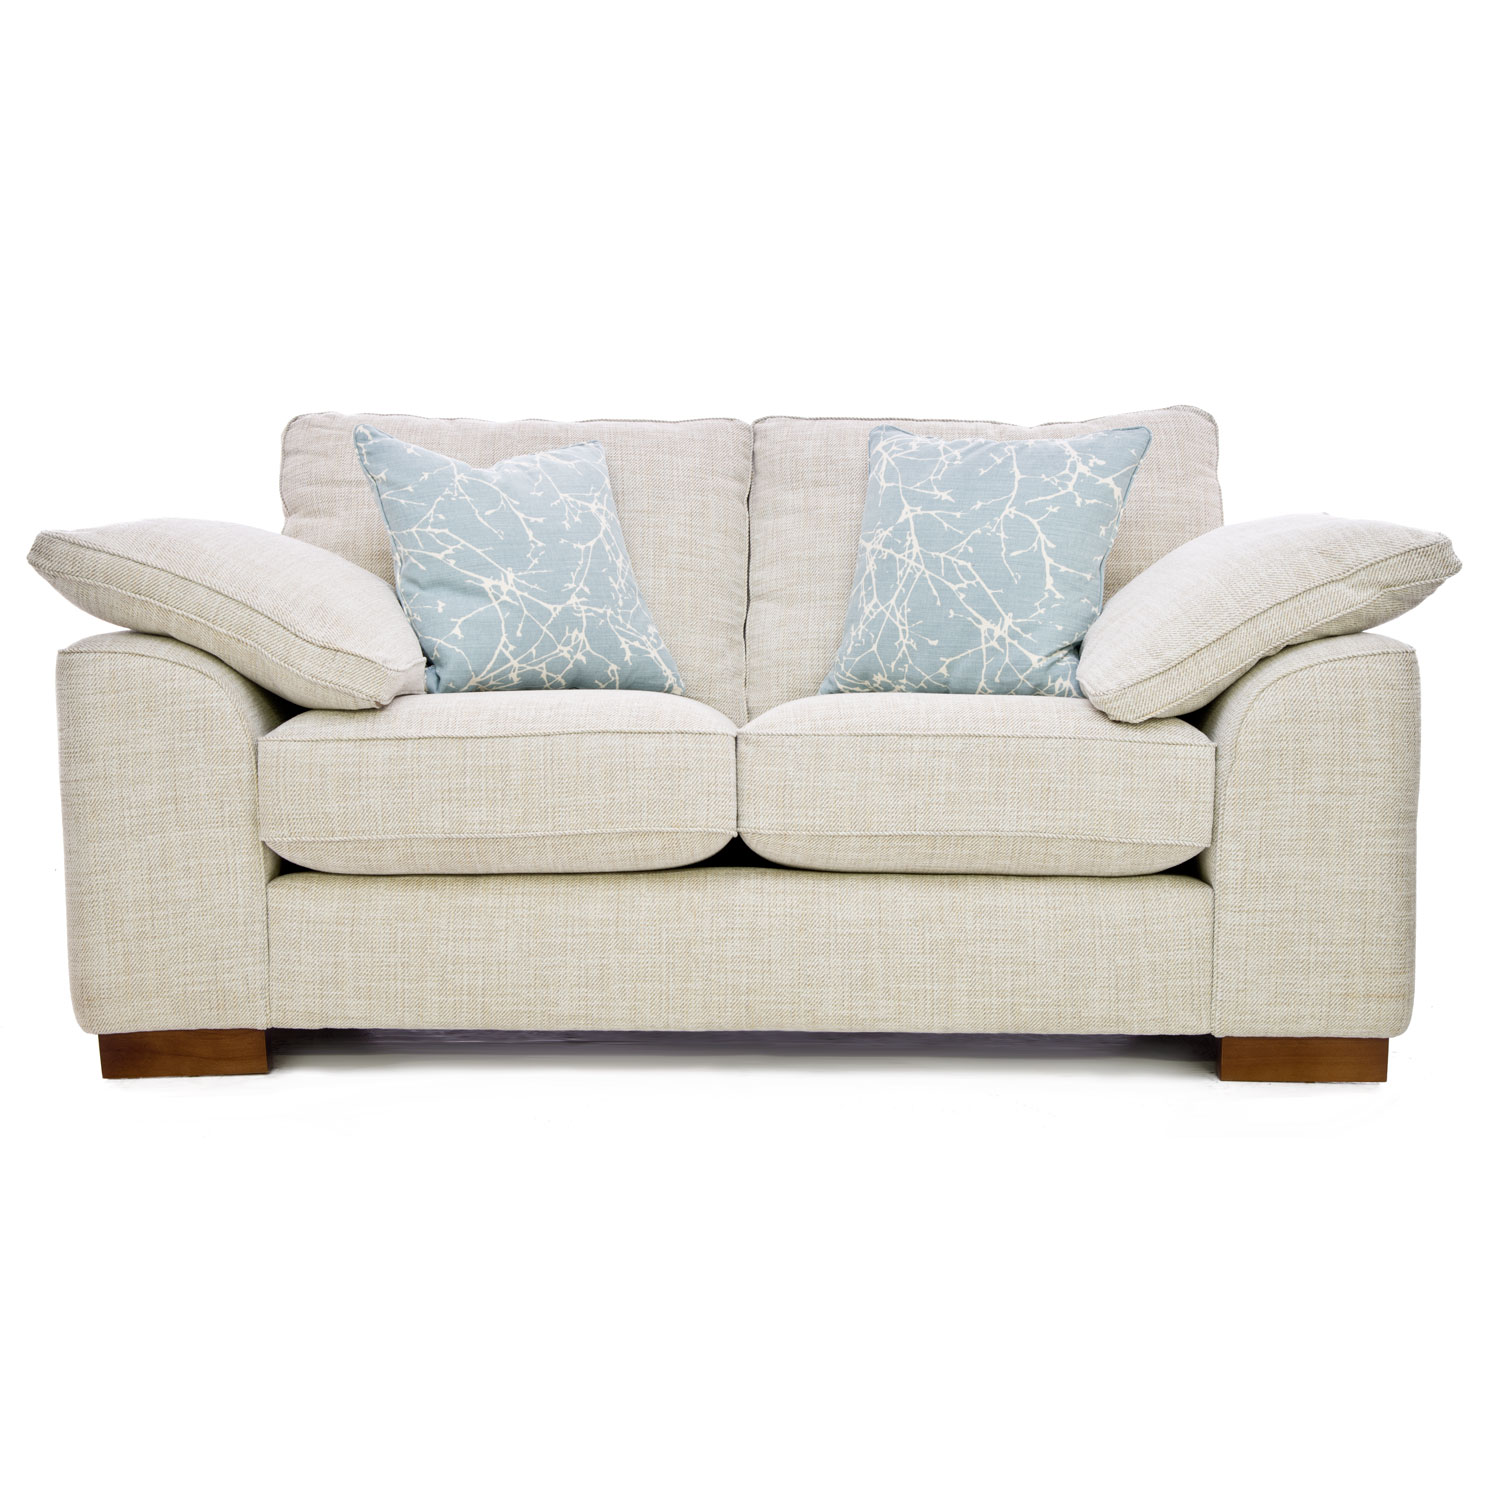 Image of Casa Blaise 2 Seater Fabric Sofa